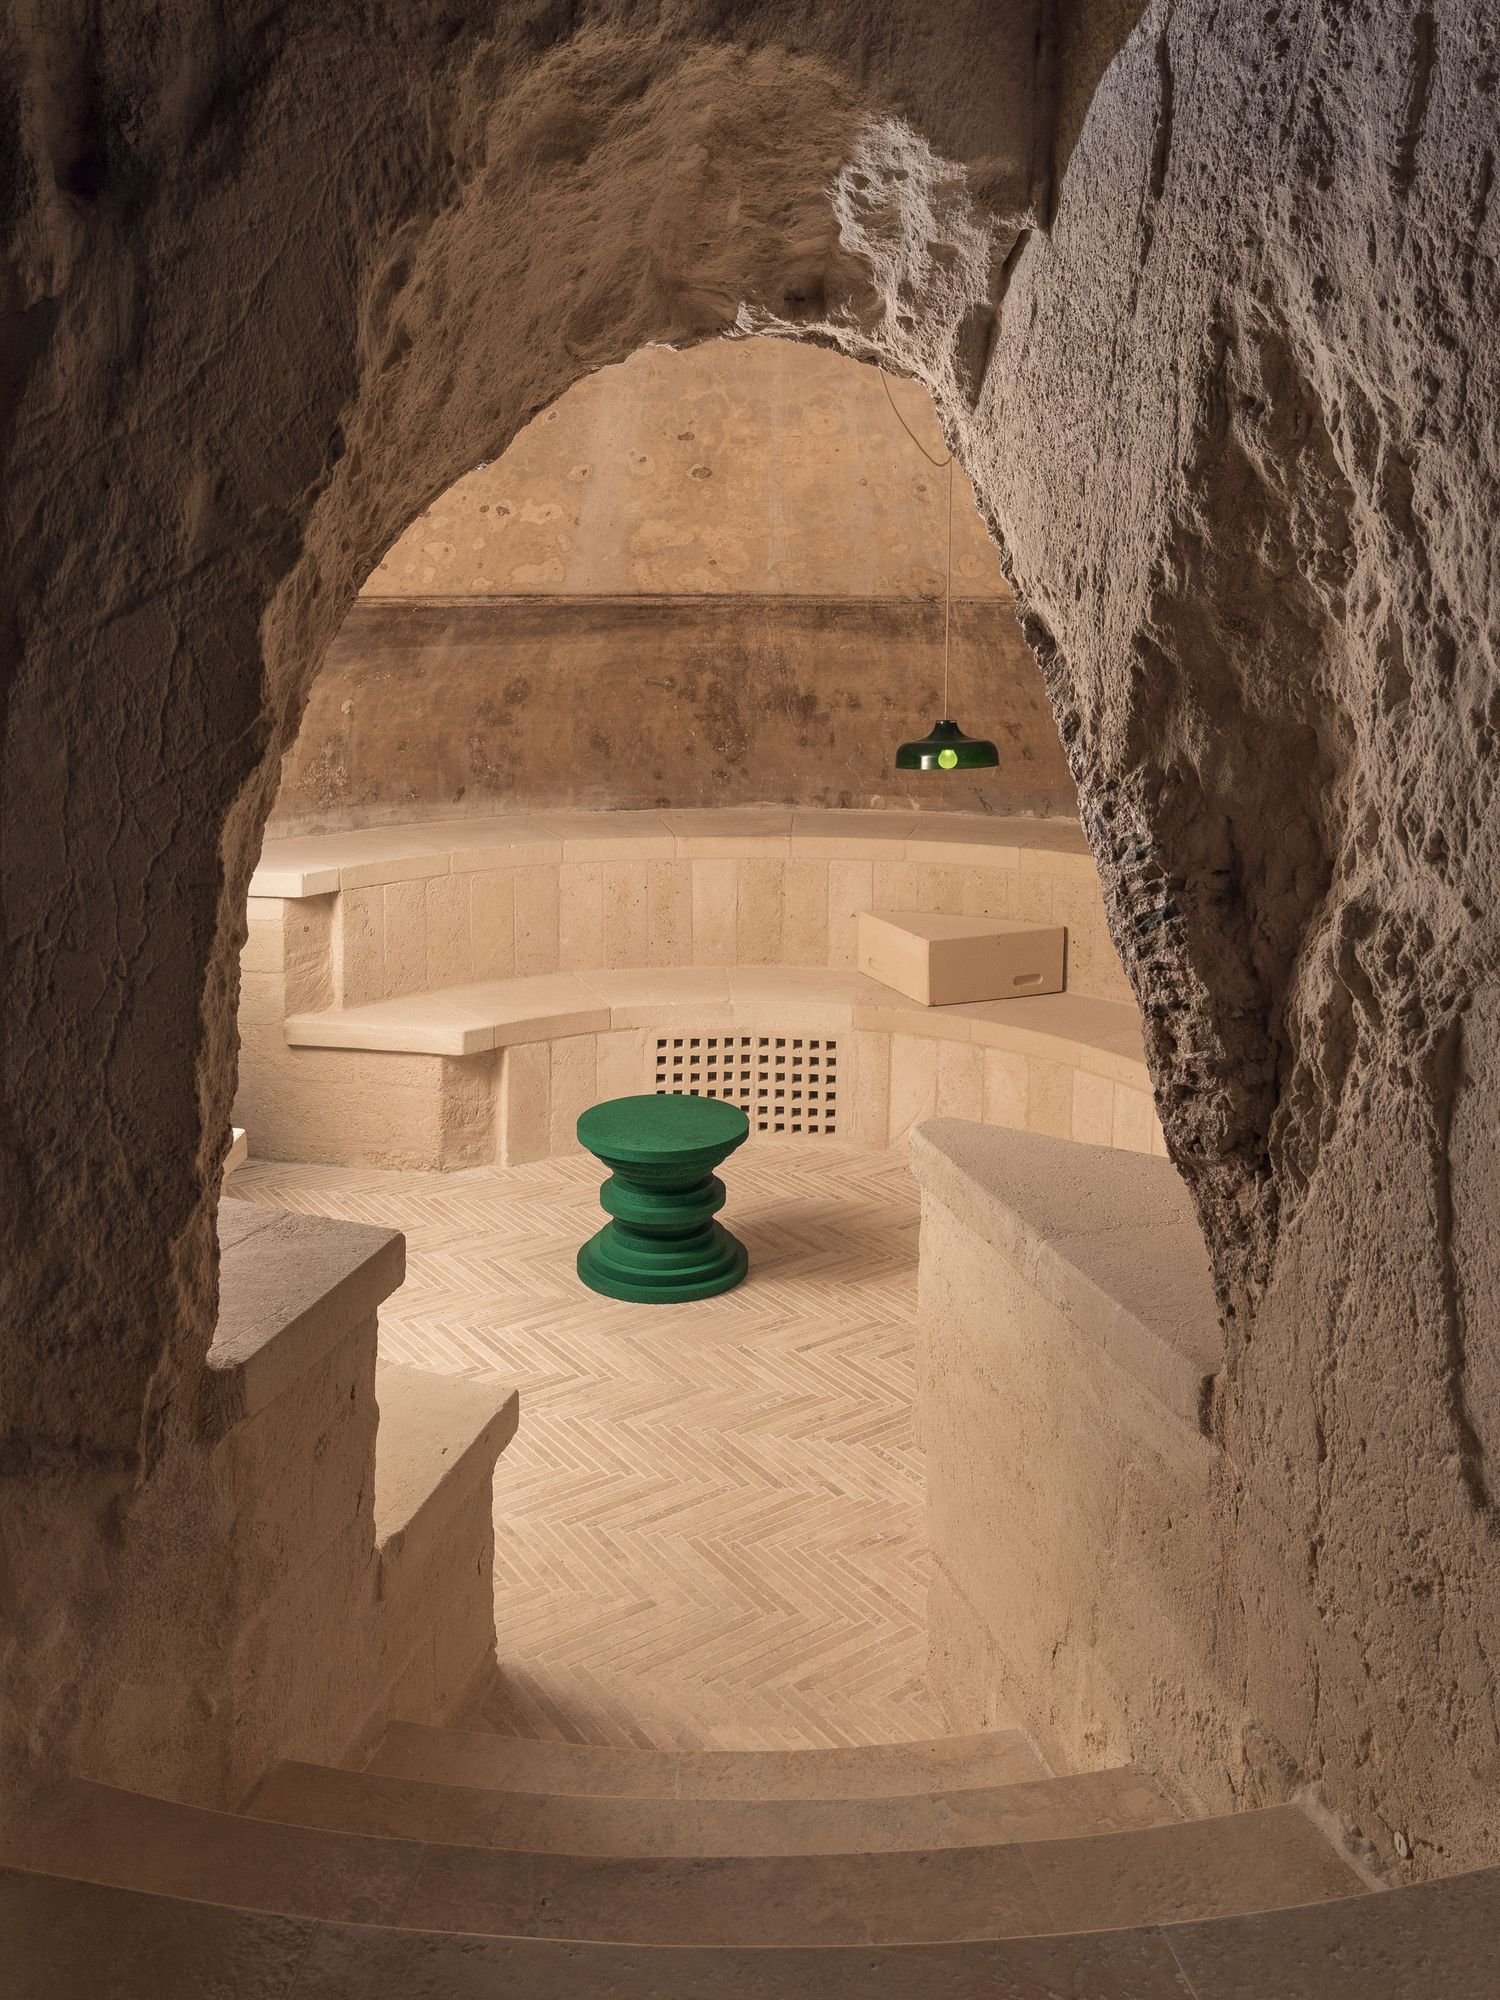 Elegant Underground Winery in Southern Italy (7 pics)